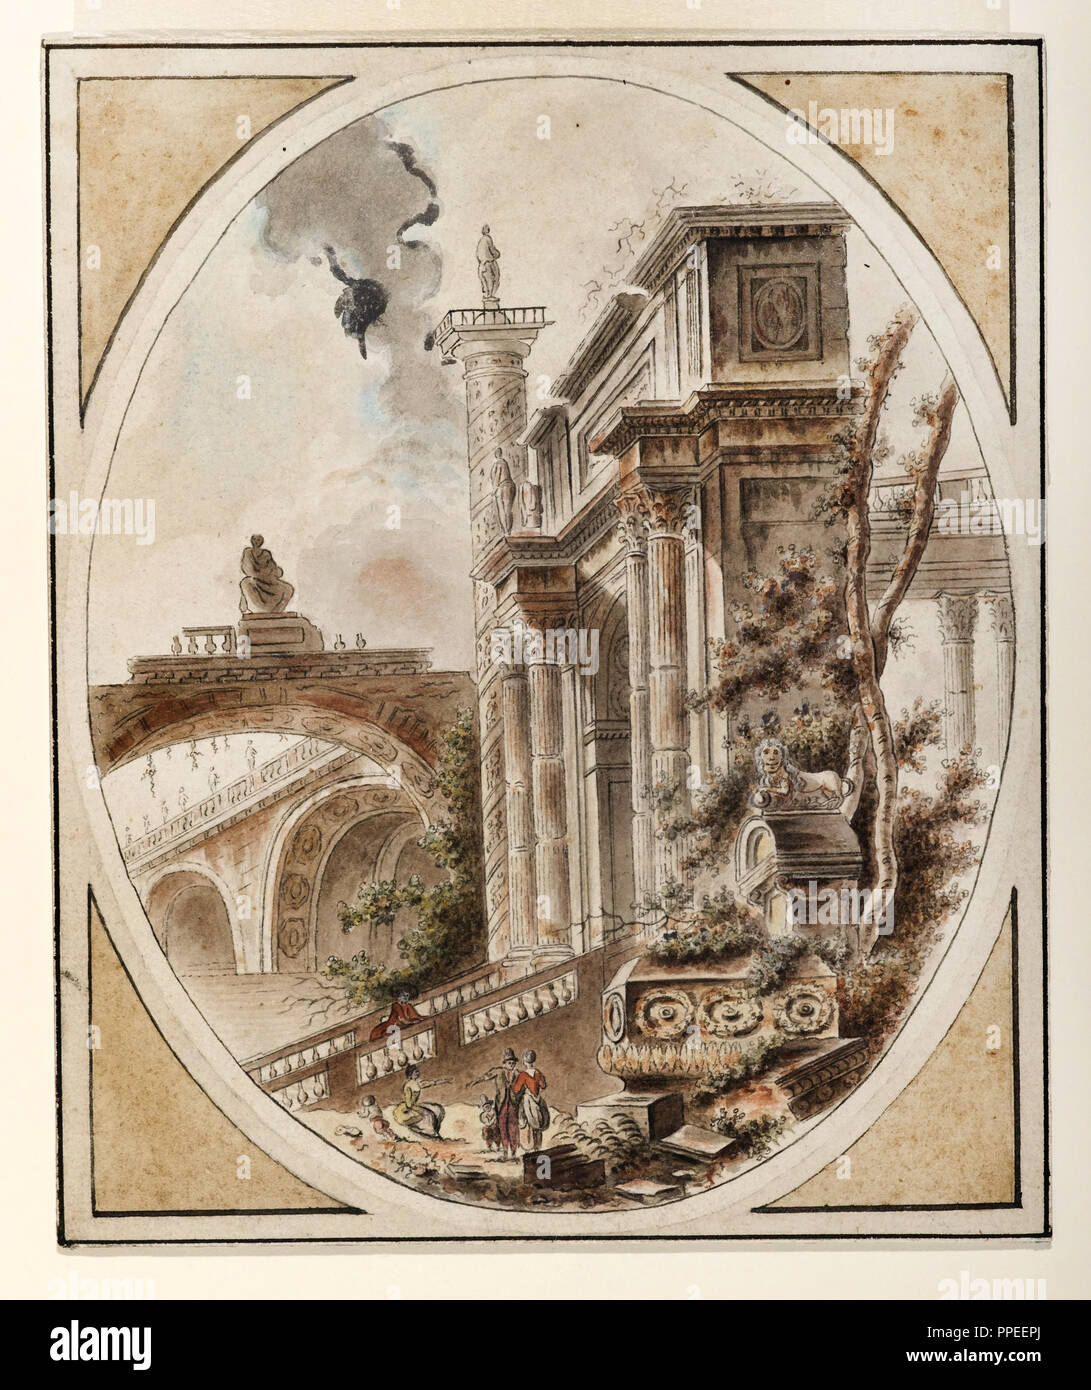 Jean-Henry-Alexandre Pernet, Fantasy of an Architectural Ruin. Circa 1770. Pen and black ink, watercolor, white gouache. Cooper Hewitt, Smithsonian De - Stock Image